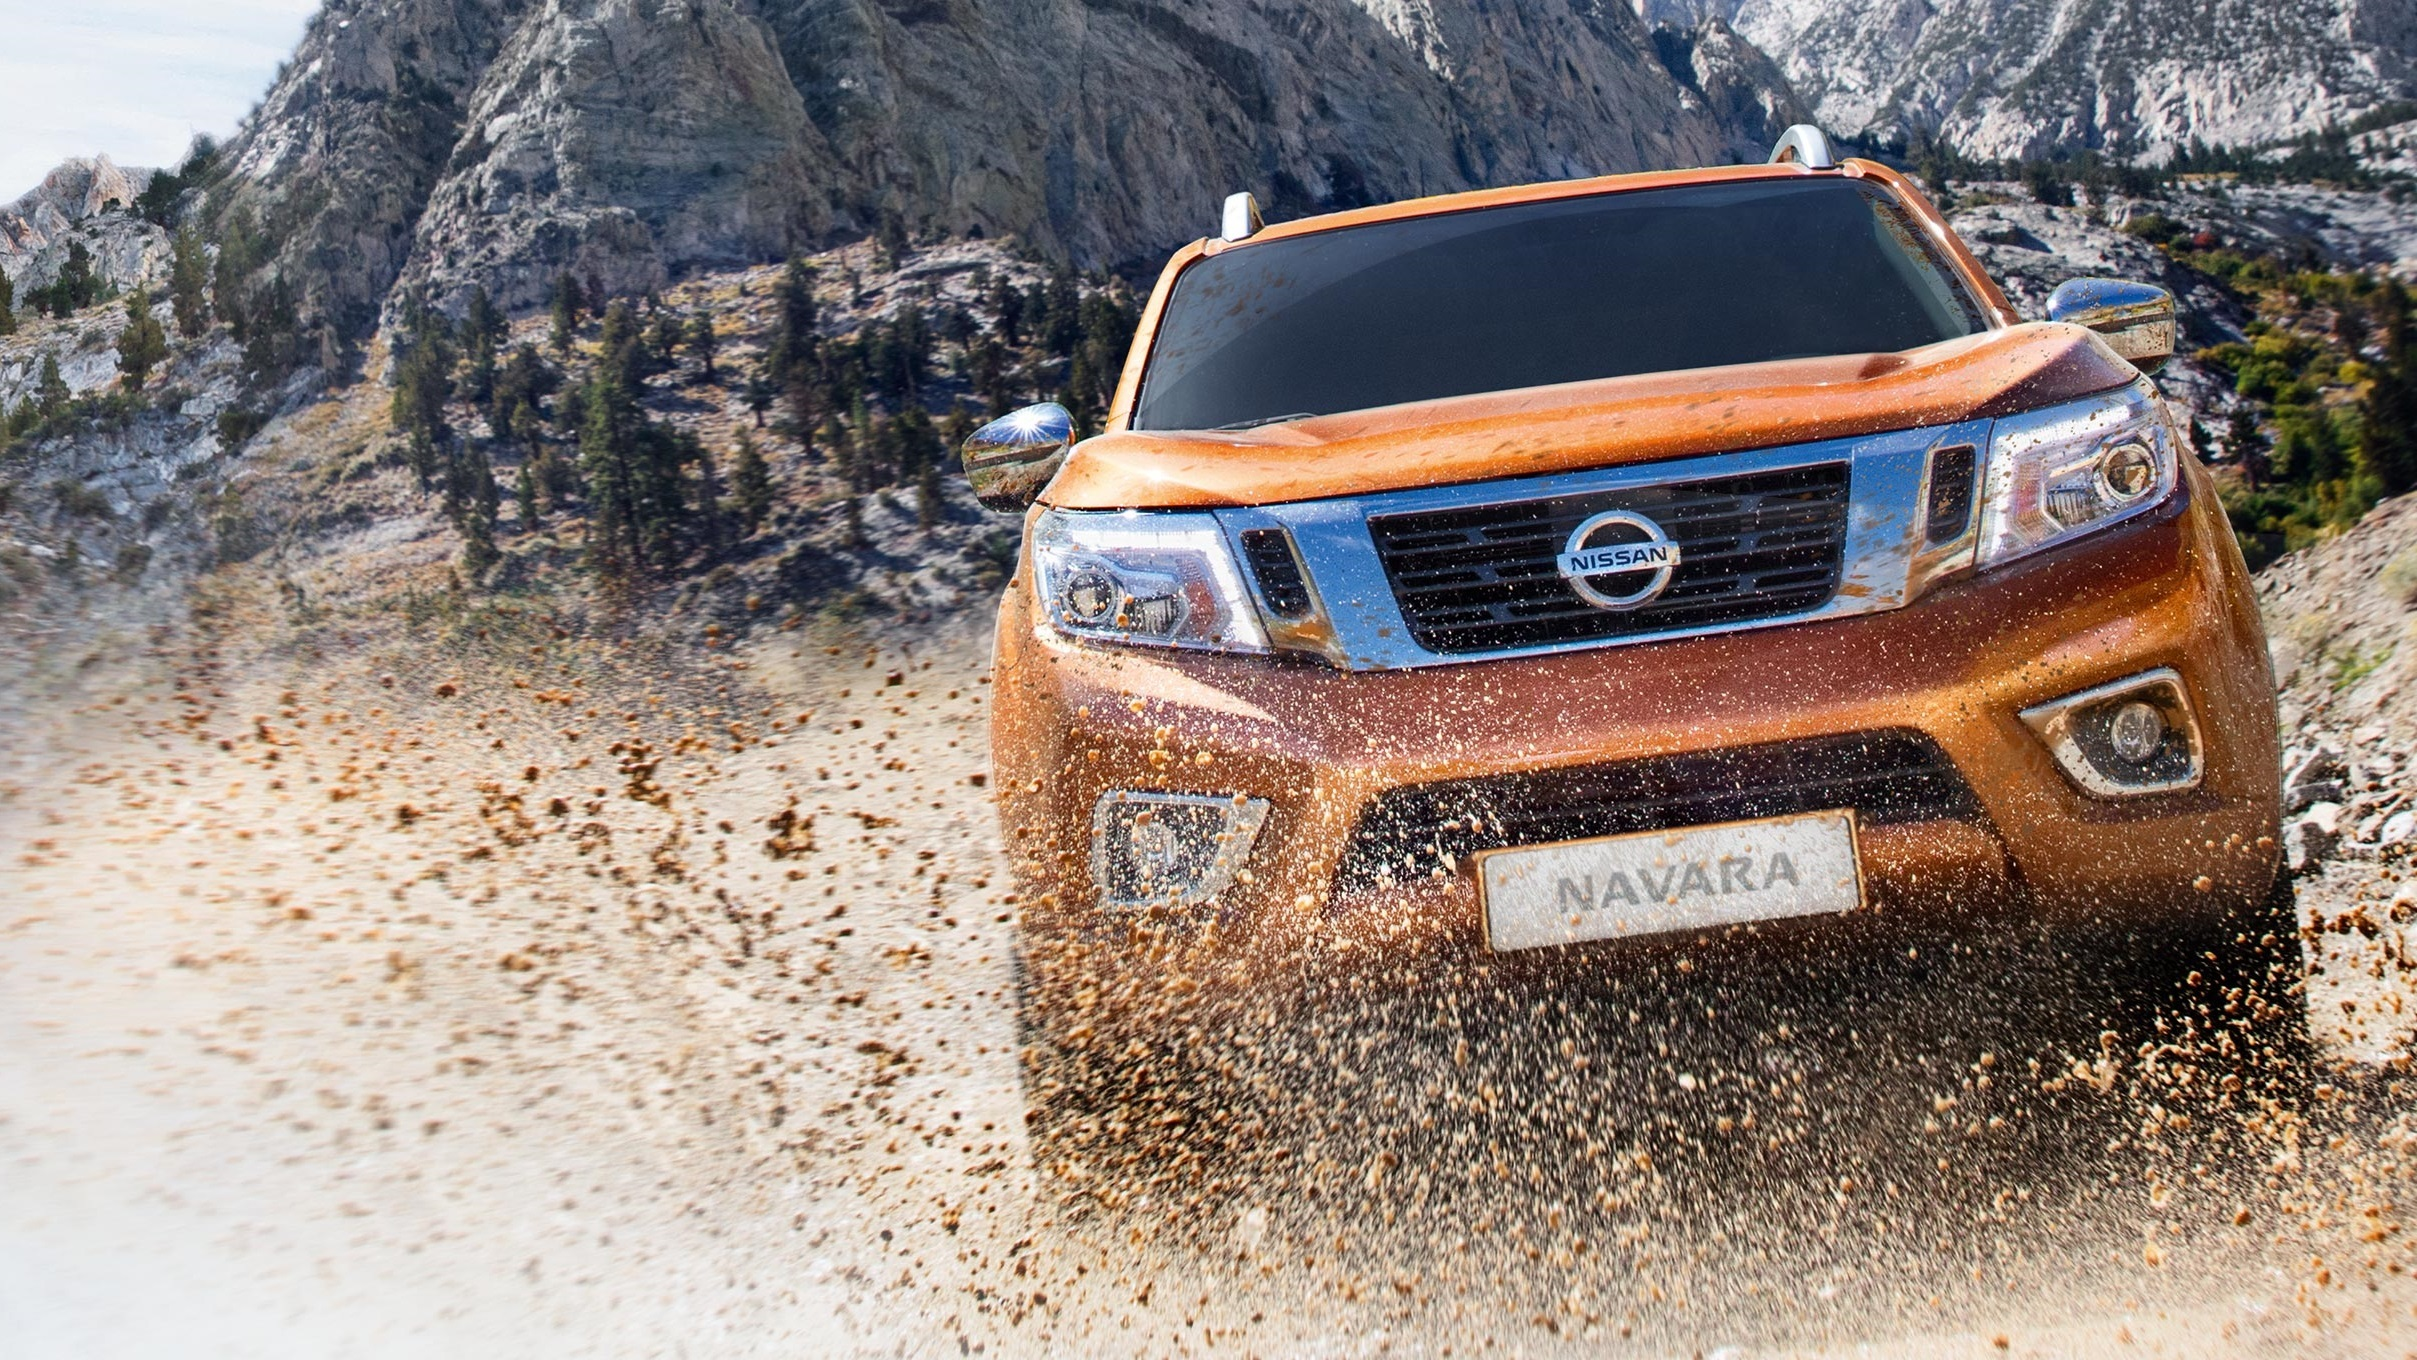 Nissan Navara driving in the desert